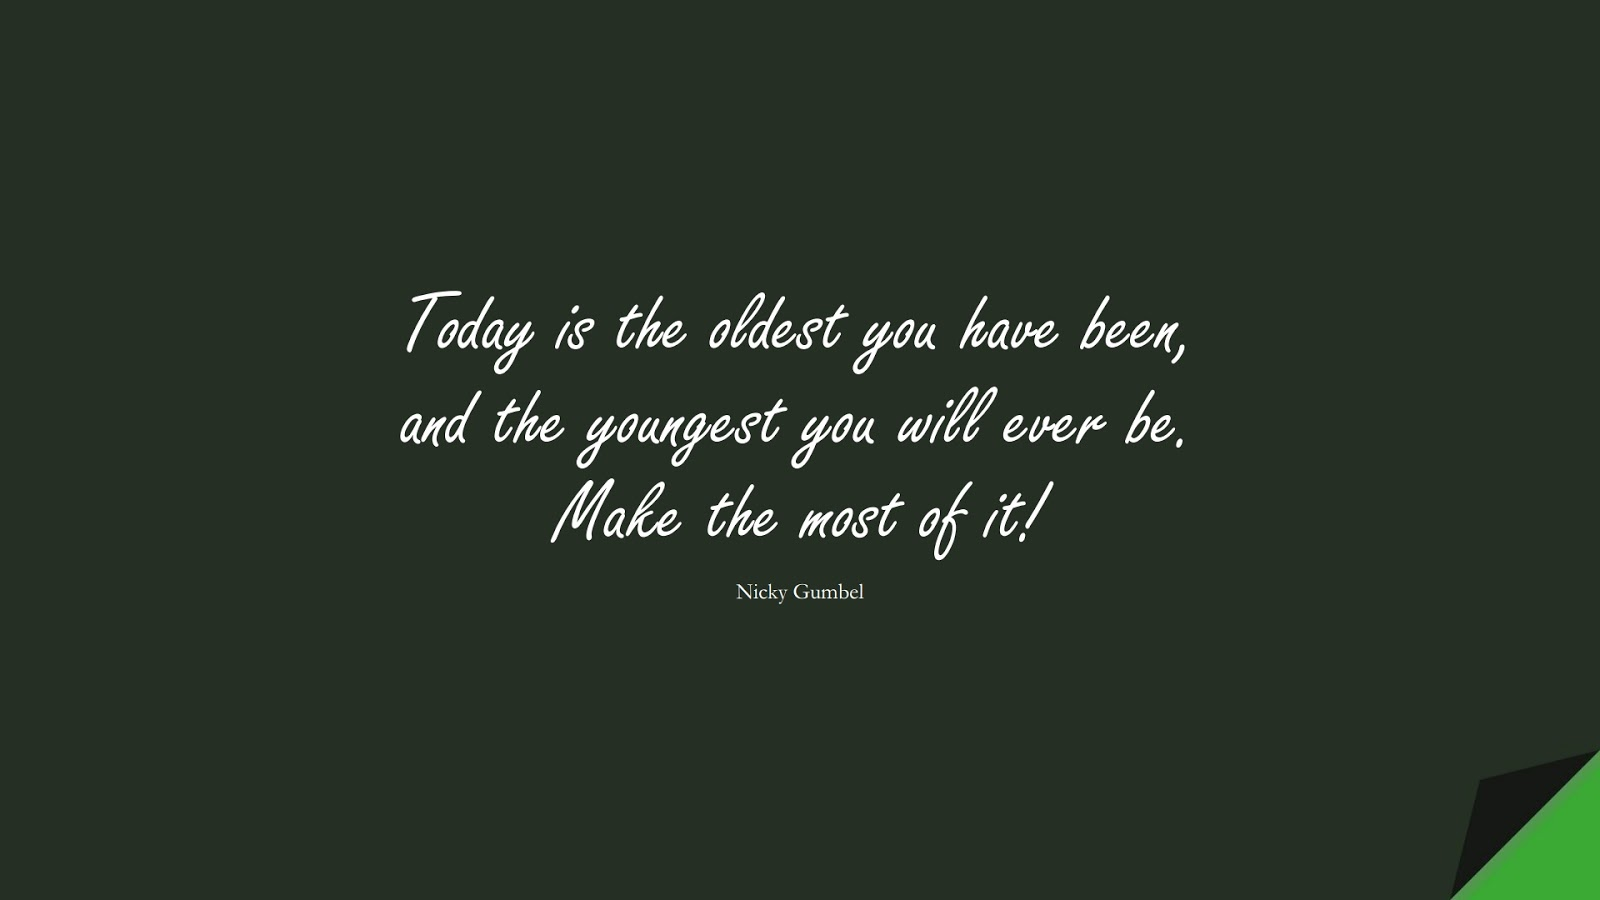 Today is the oldest you have been, and the youngest you will ever be. Make the most of it! (Nicky Gumbel);  #BirthdayQuotes